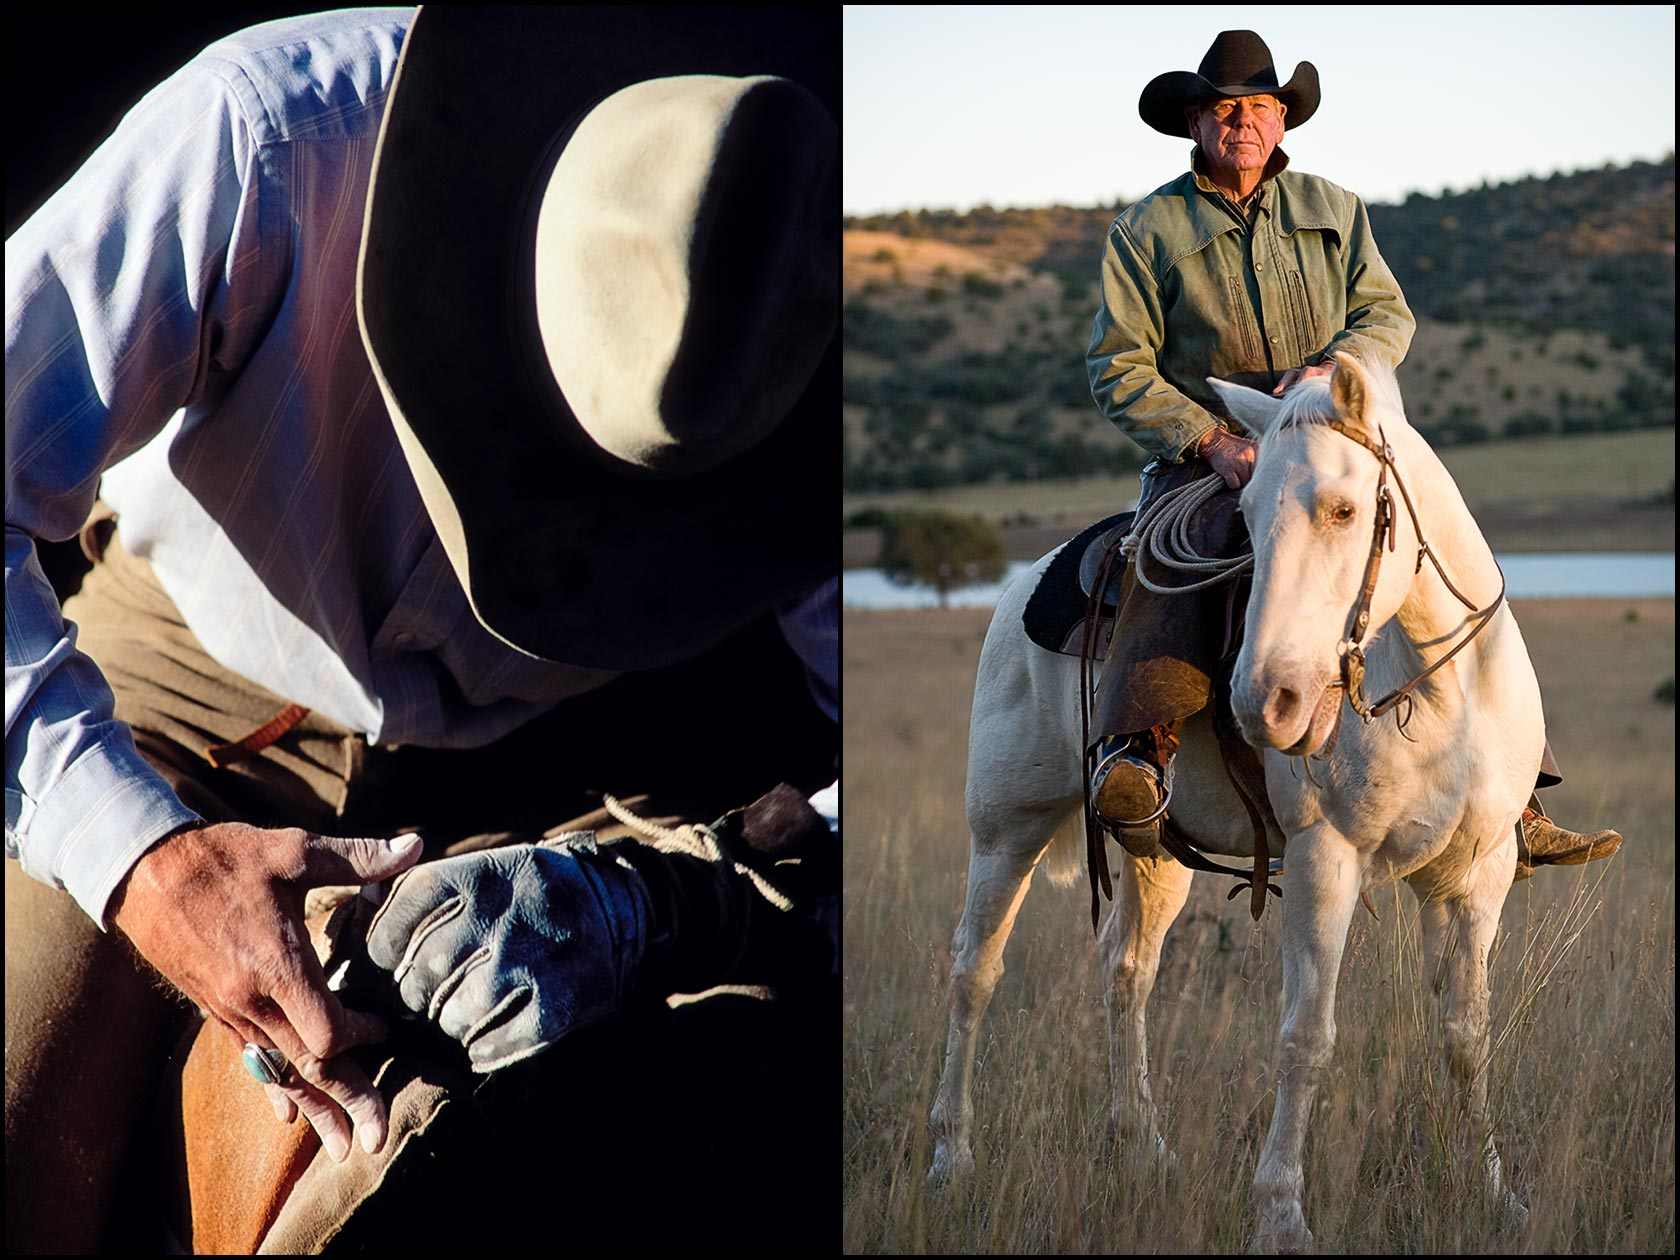 A cowboy prepares for rodeo competition (L), A west Texas cowboy in a black hat on a white horse (R).